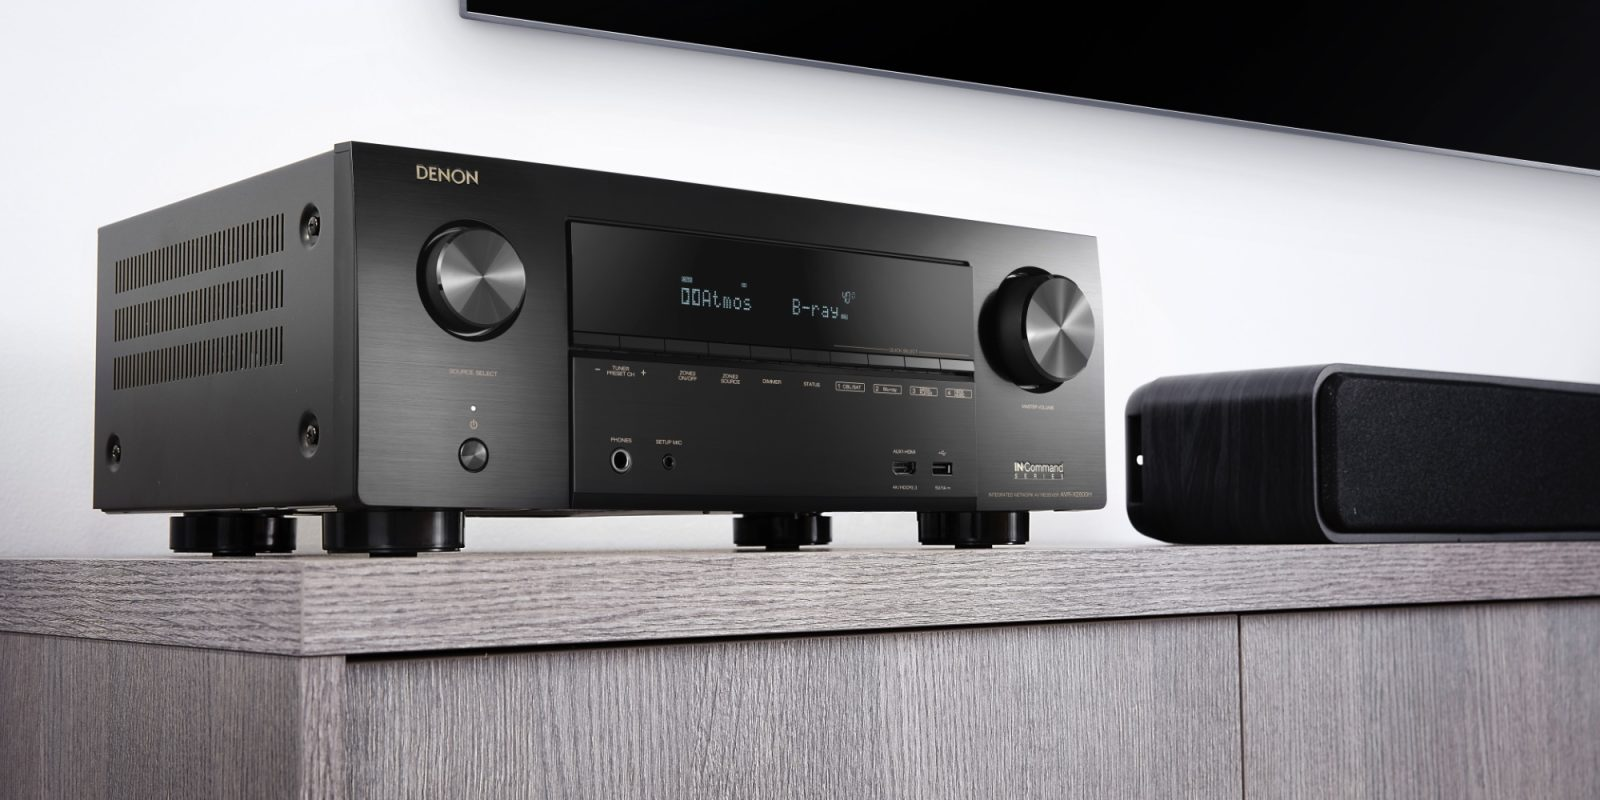 Denon X-Series AV Receivers tout AirPlay 2 + hi-res playback